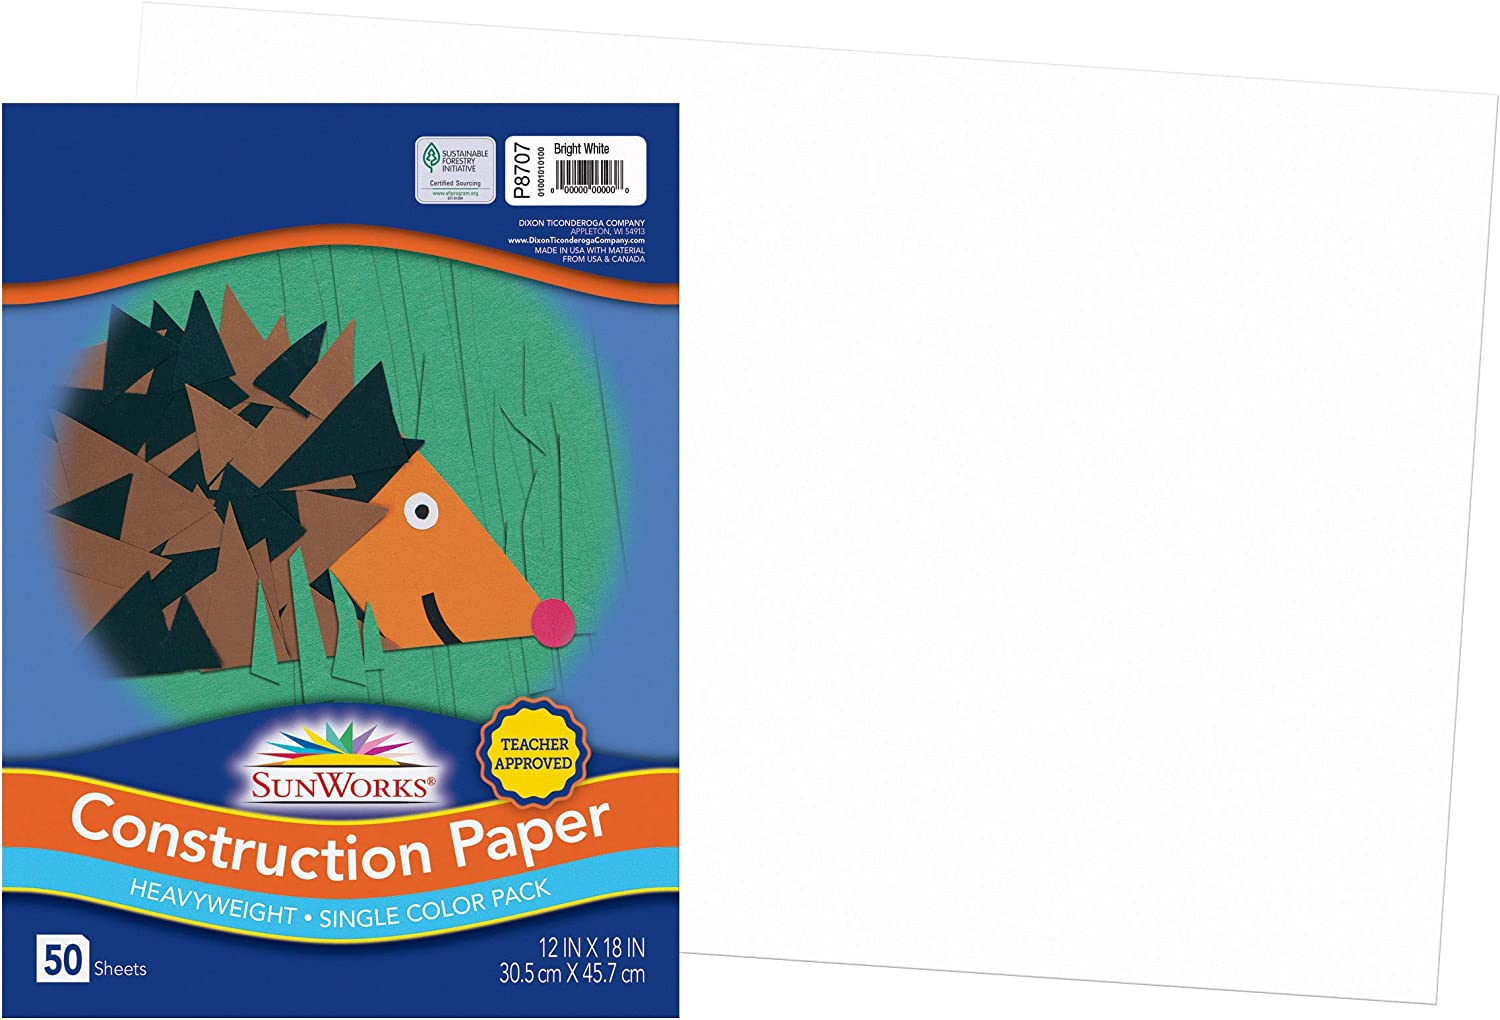 Today's only SunWorks Construction Paper Max 69% OFF Bright White x Sheets 50 18